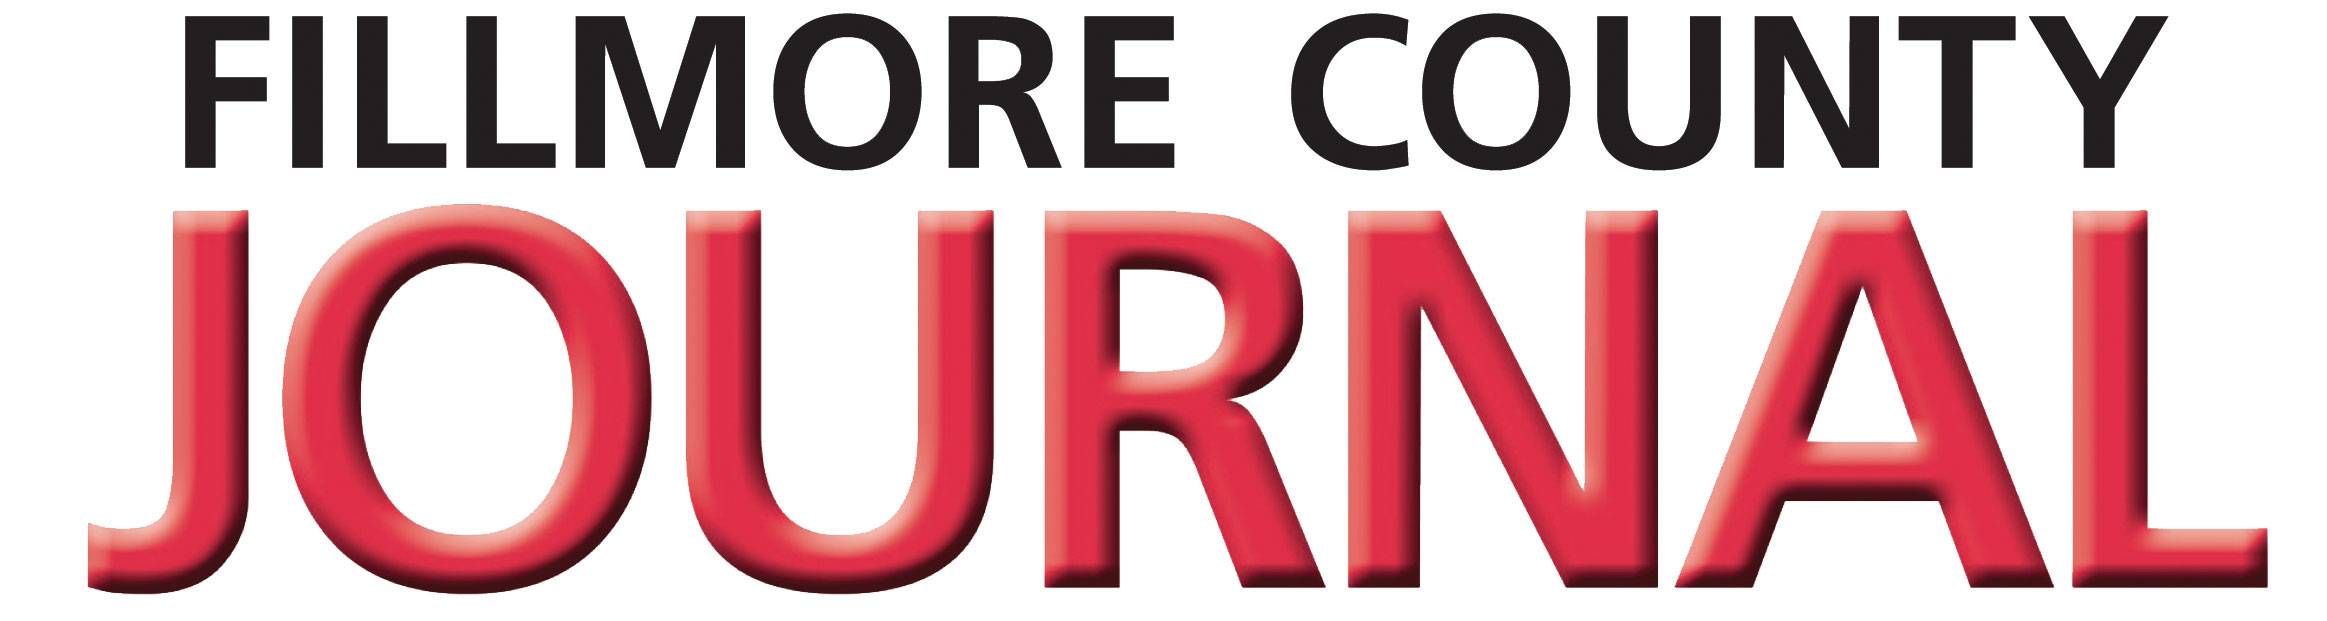 Fillmore County Journal - Logo